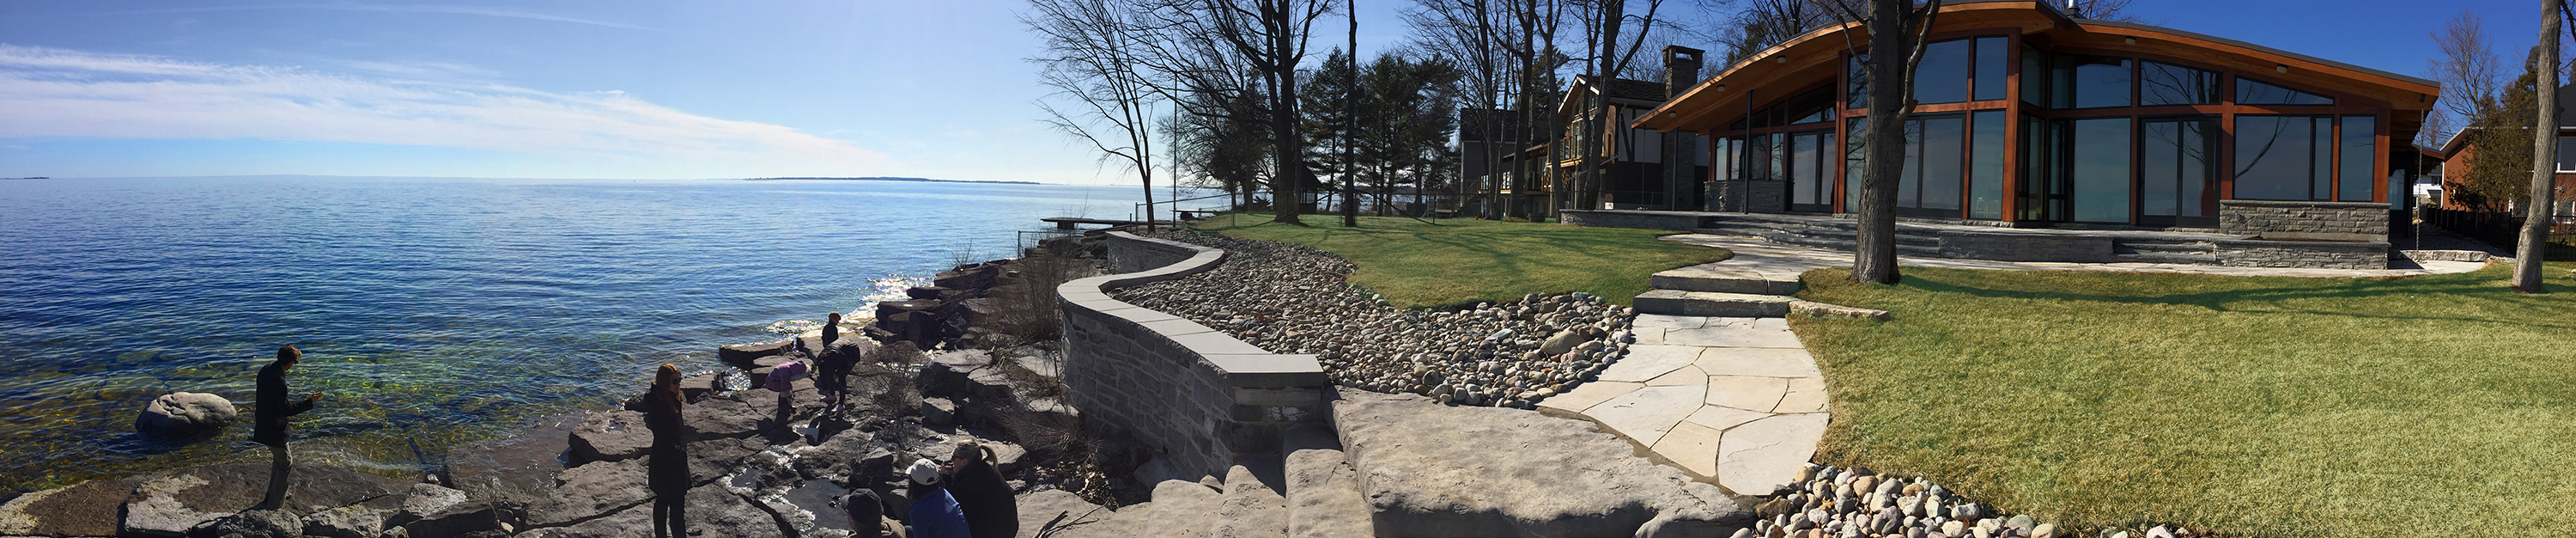 Views of Lake Ontario from Dr. Delva's home